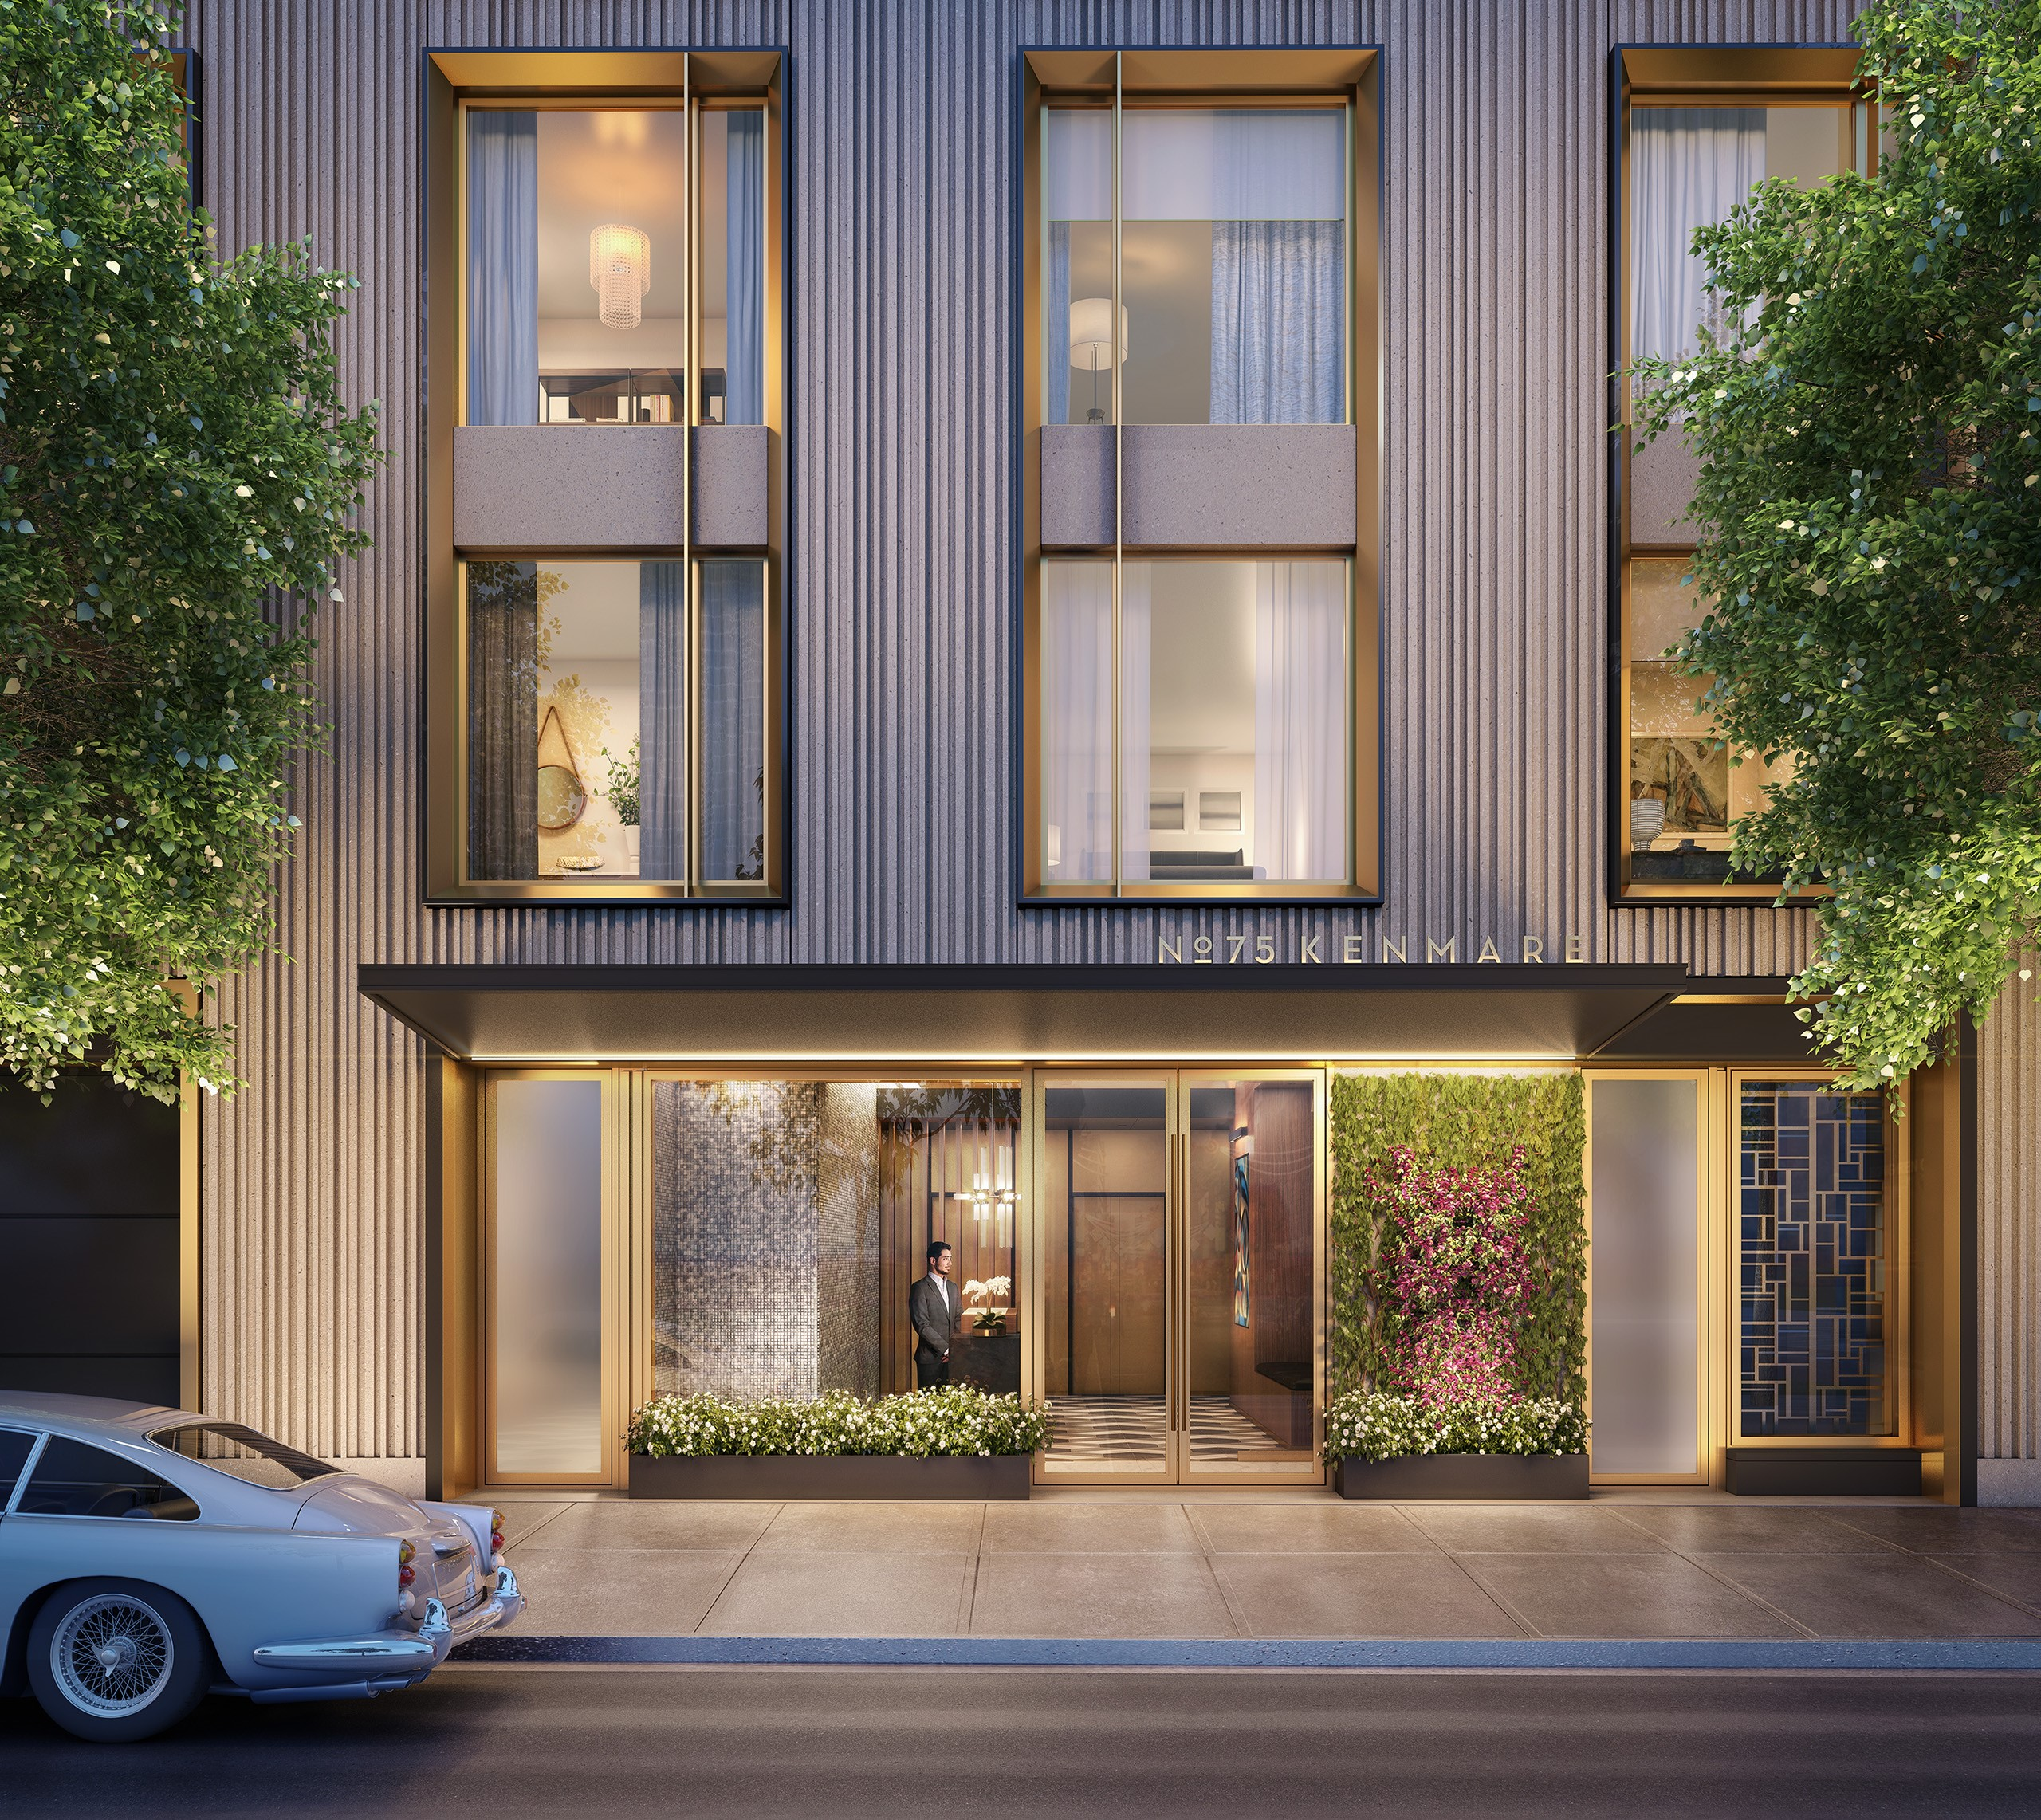 Lenny Kravitz To Design Interiors For 75 Kenmare Luxury Condo Real Estate Weekly